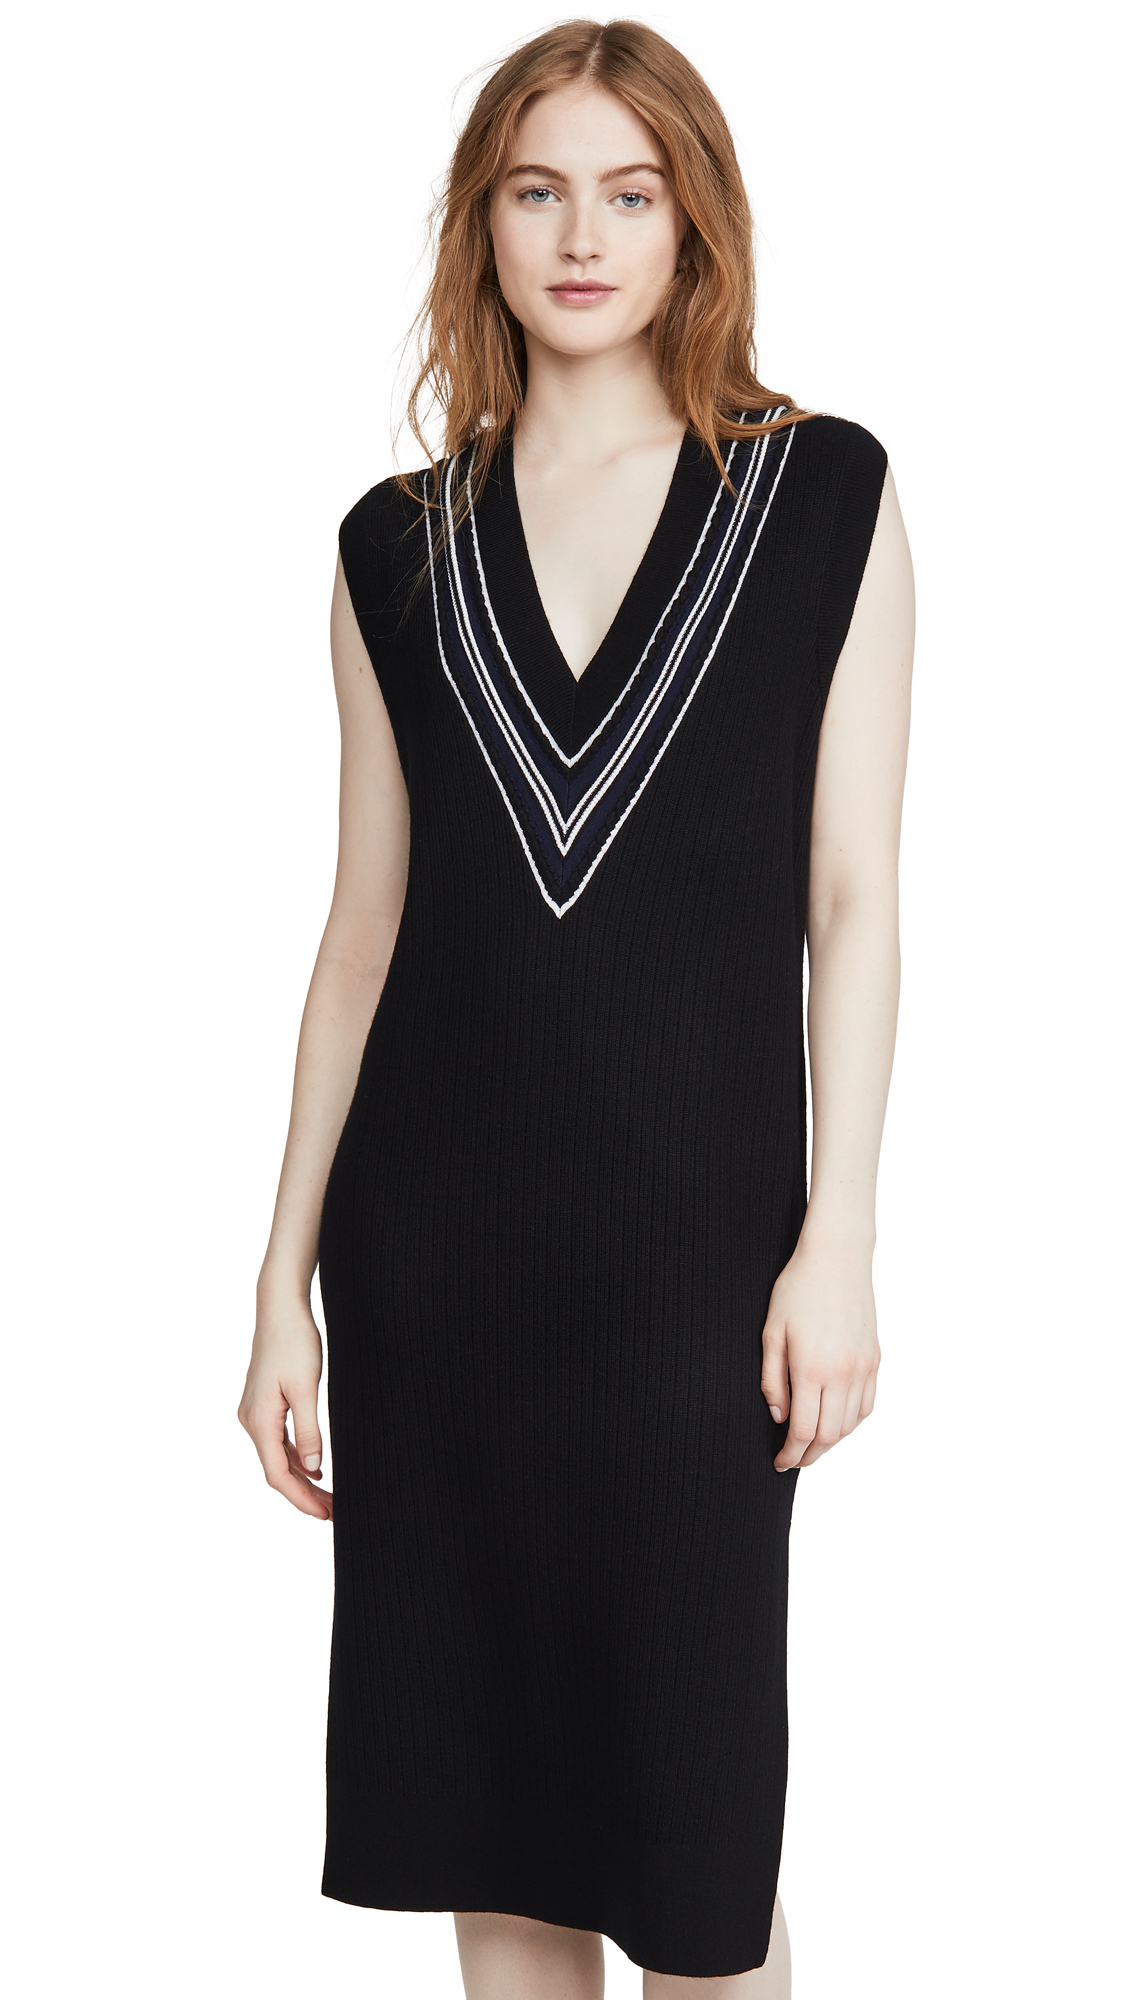 Rag & Bone Dianna Dress - 40% Off Sale